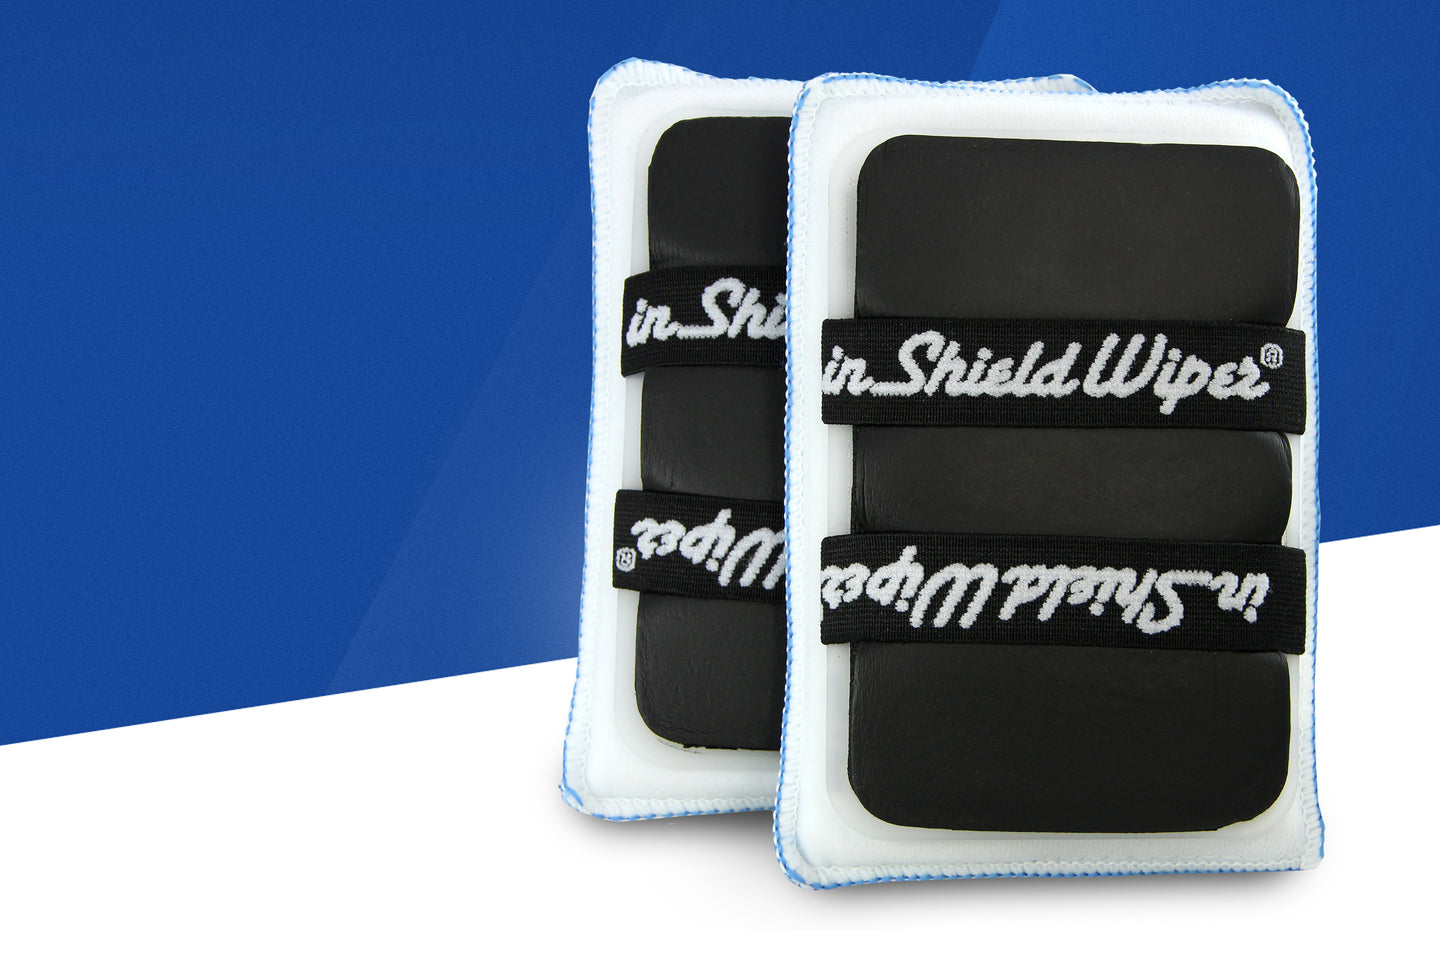 The Original inShield Wiper® 2-Pack for $19.99